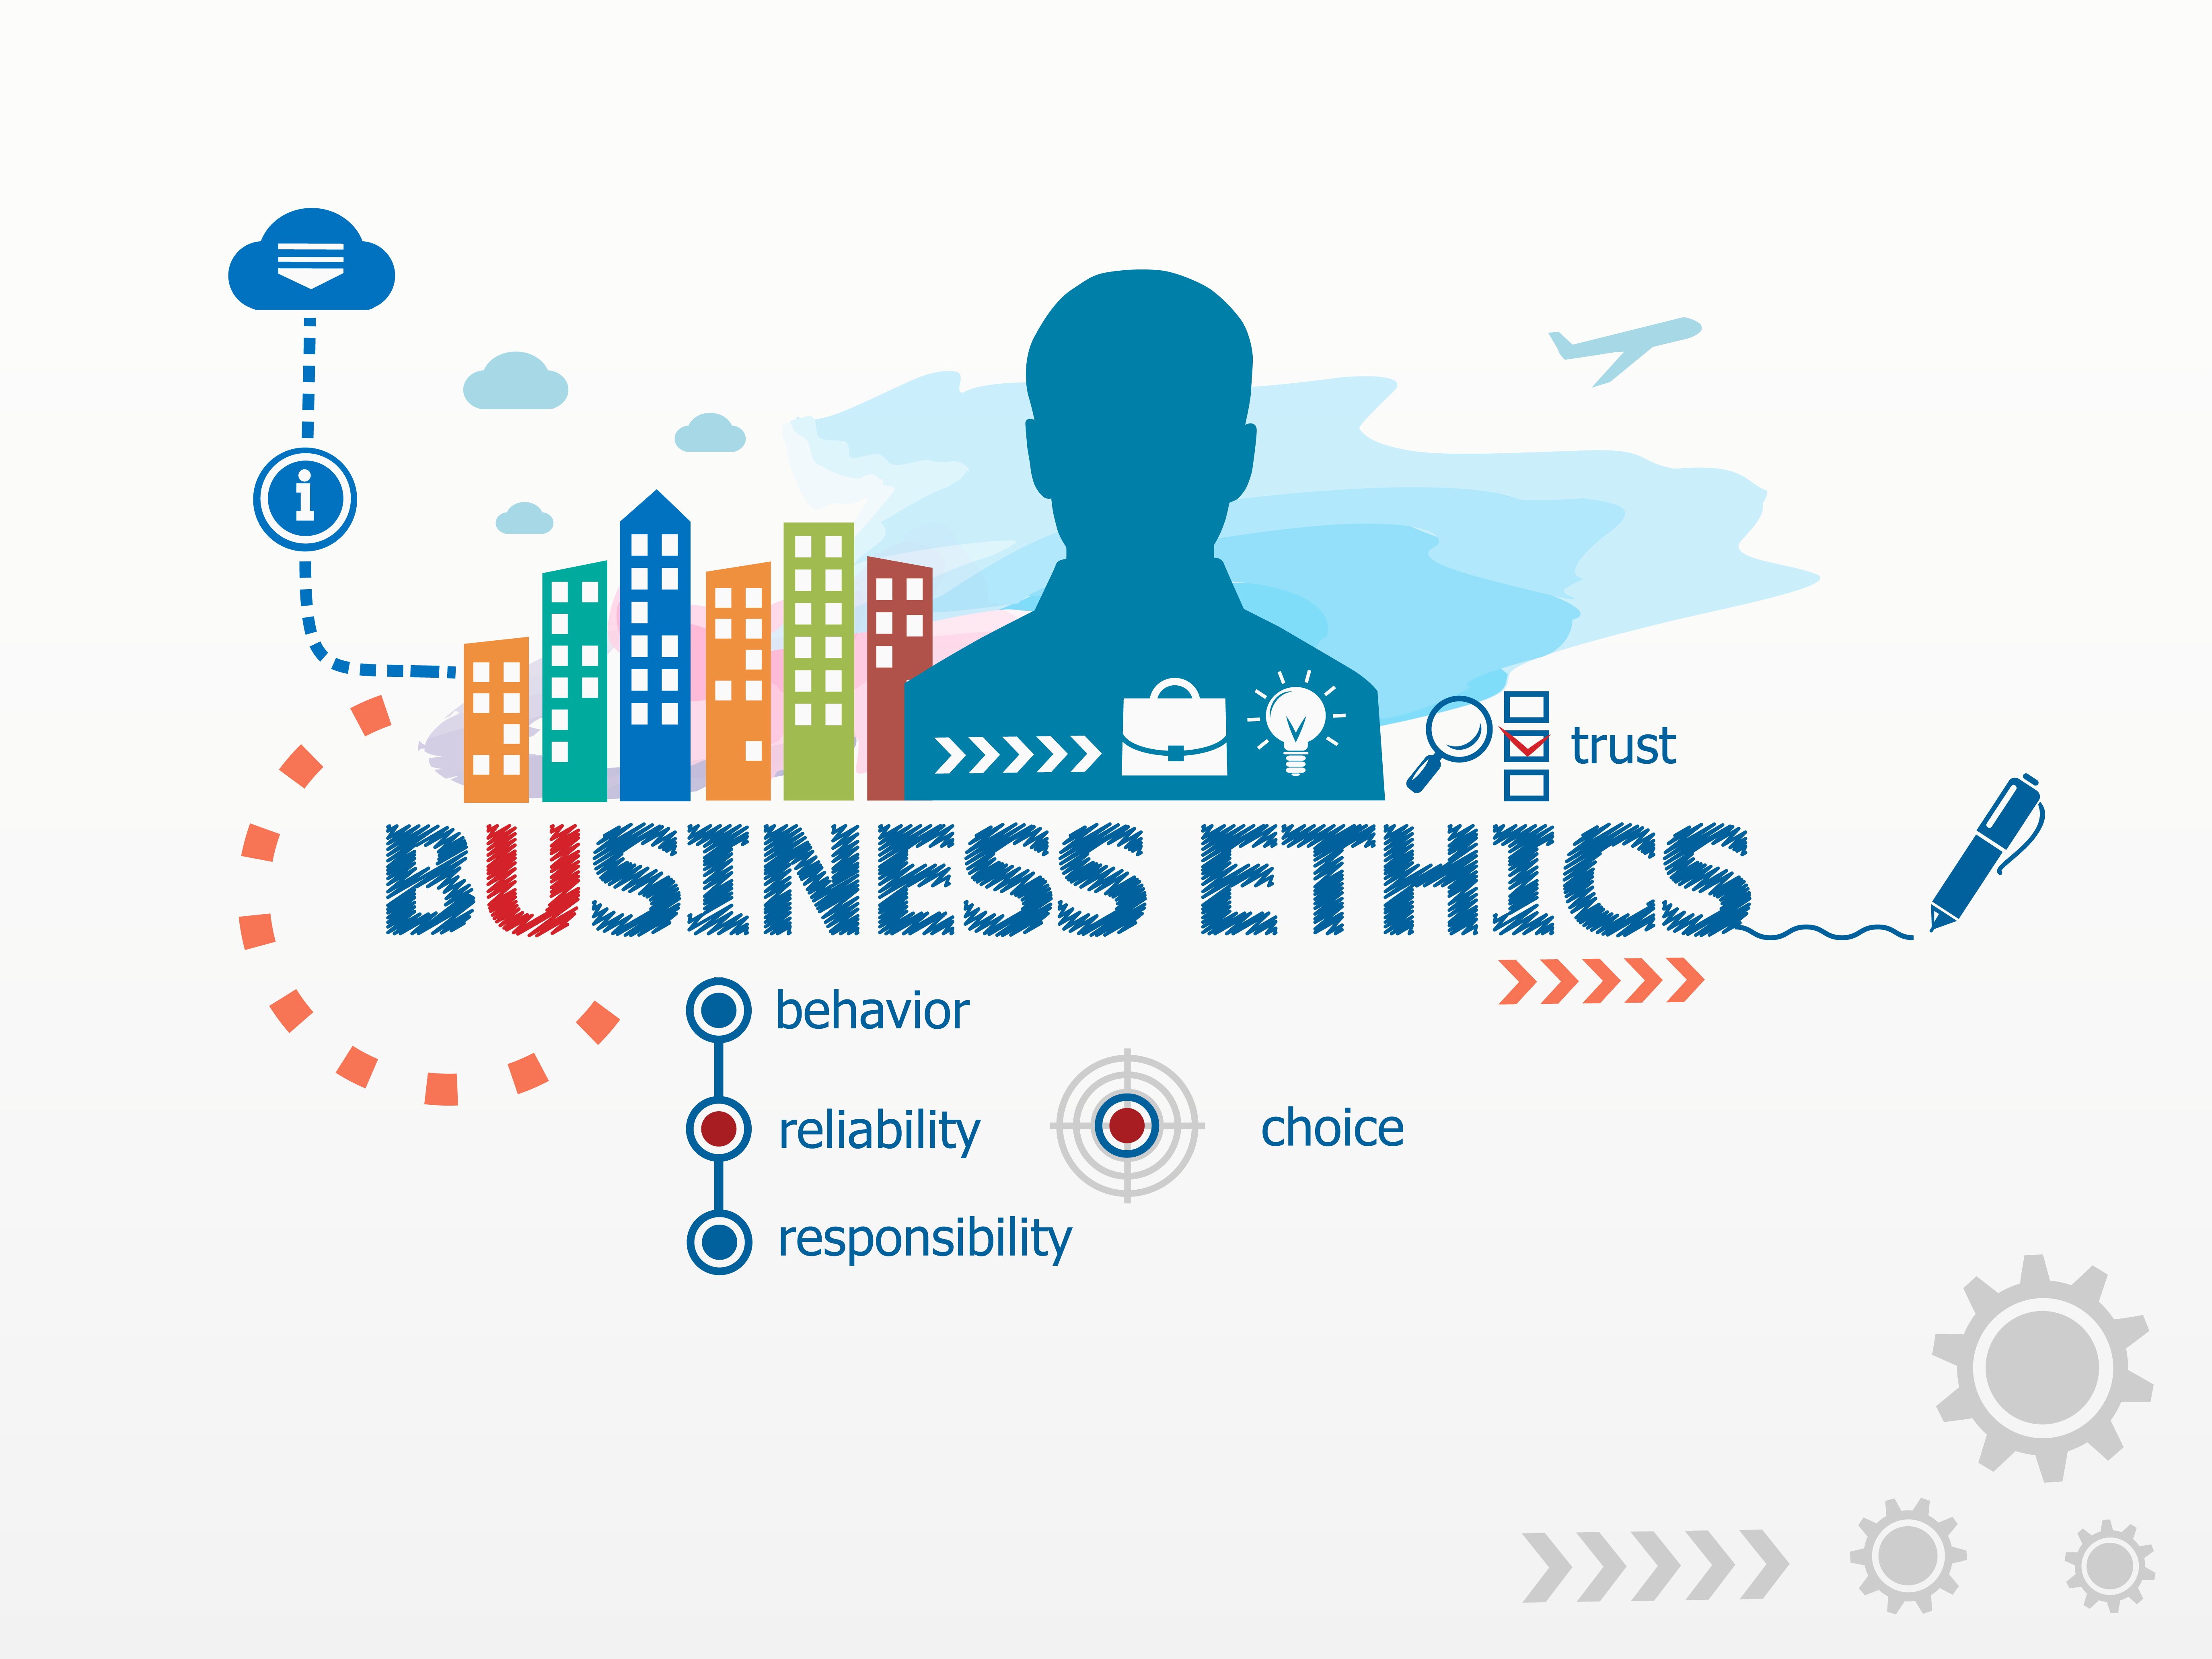 bluffing business ethics and carr